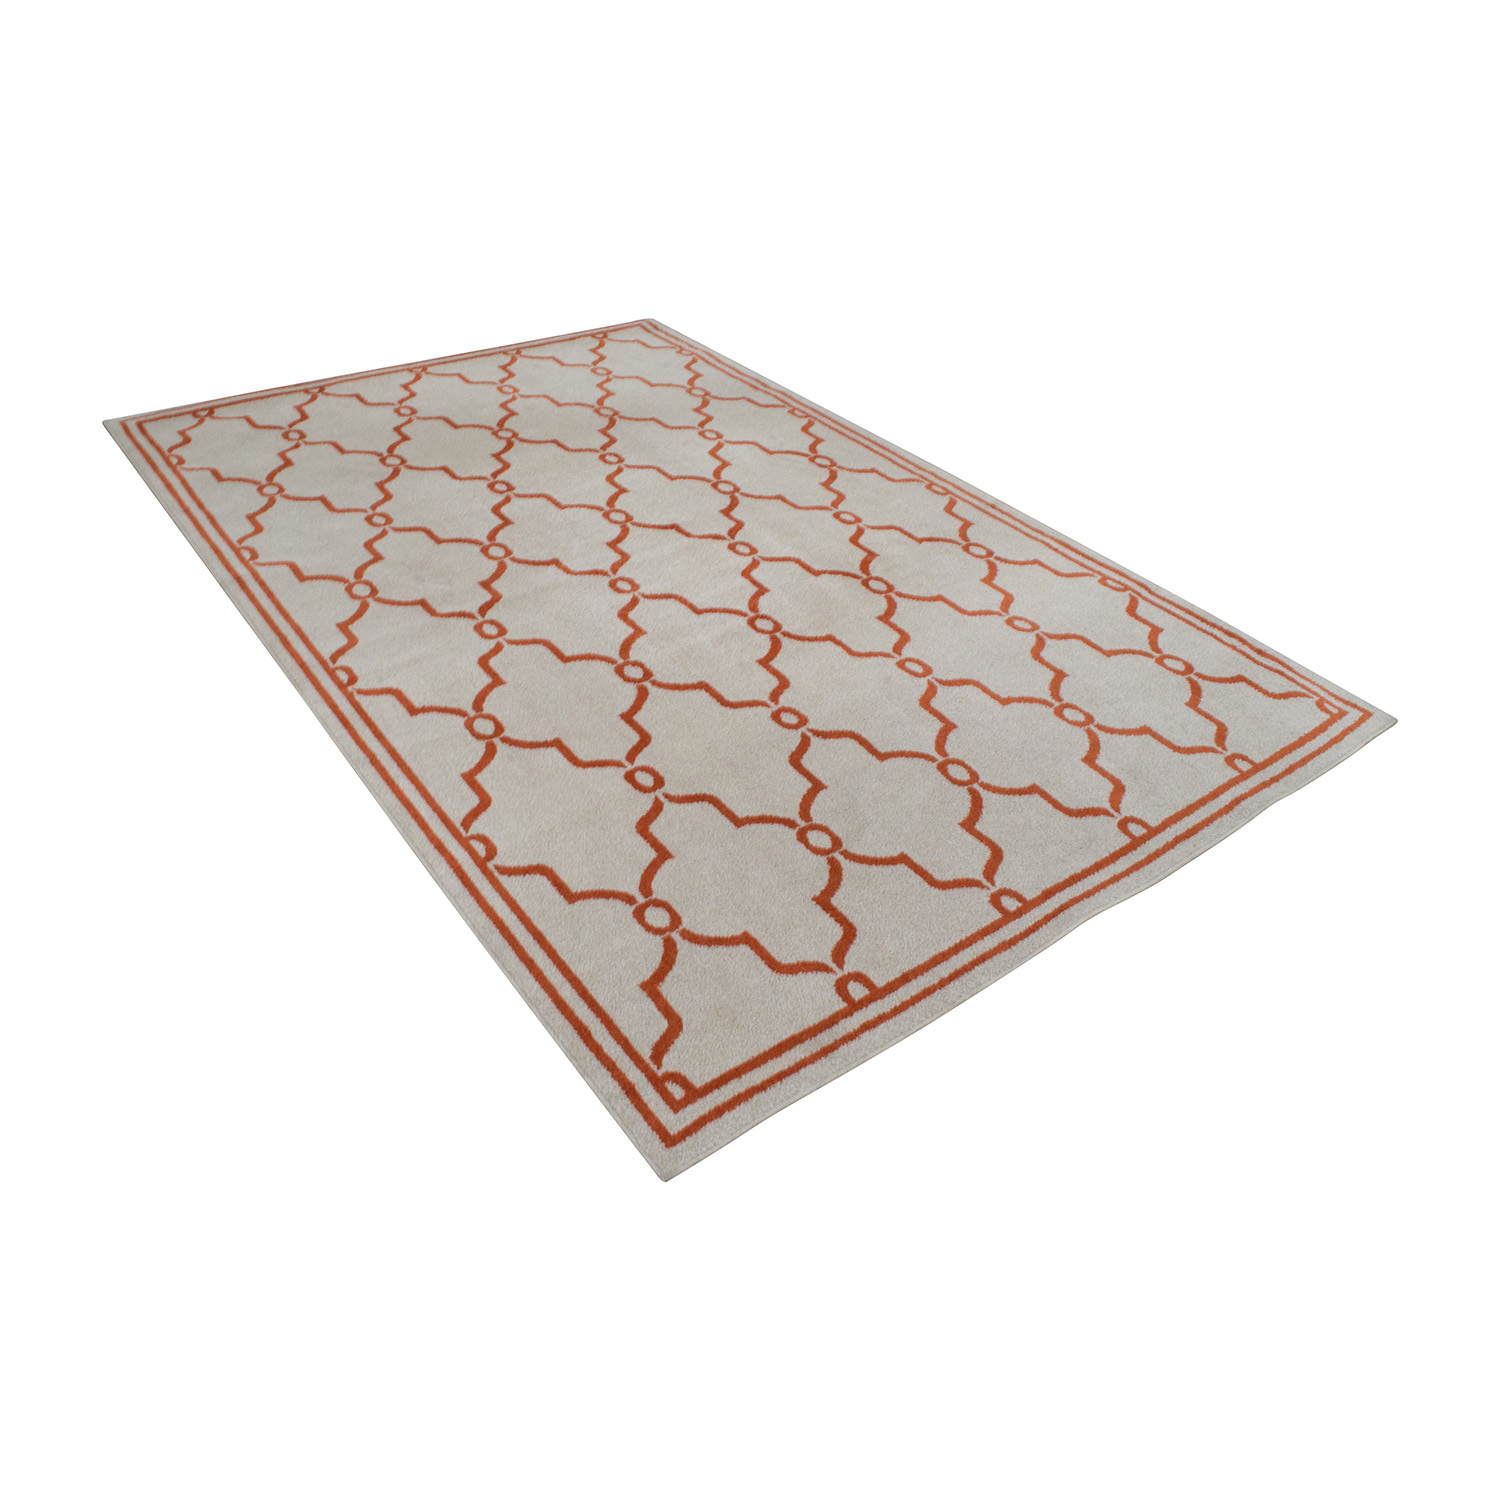 Safavieh Amherst Beige and Orange Indoor or Outdoor Rug / Rugs